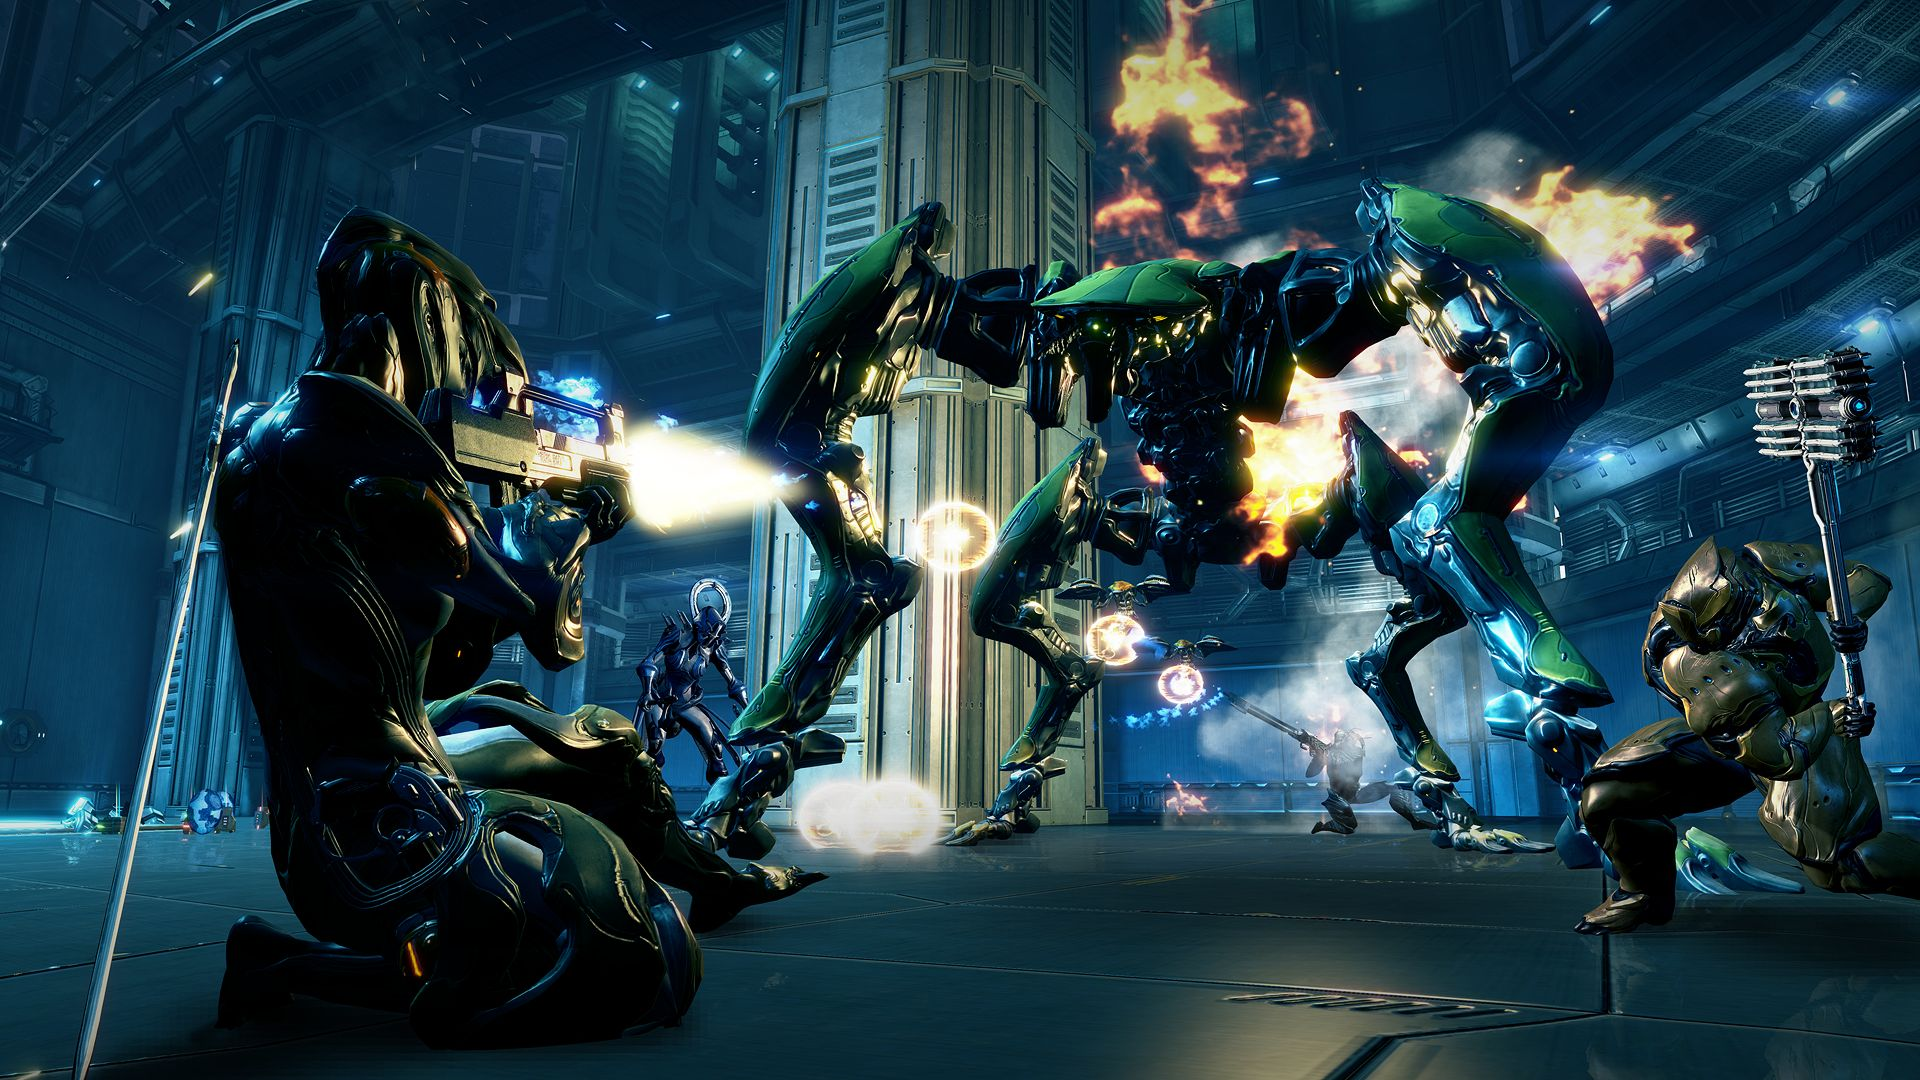 PS4 Warframe Update New Warframe Mode And More